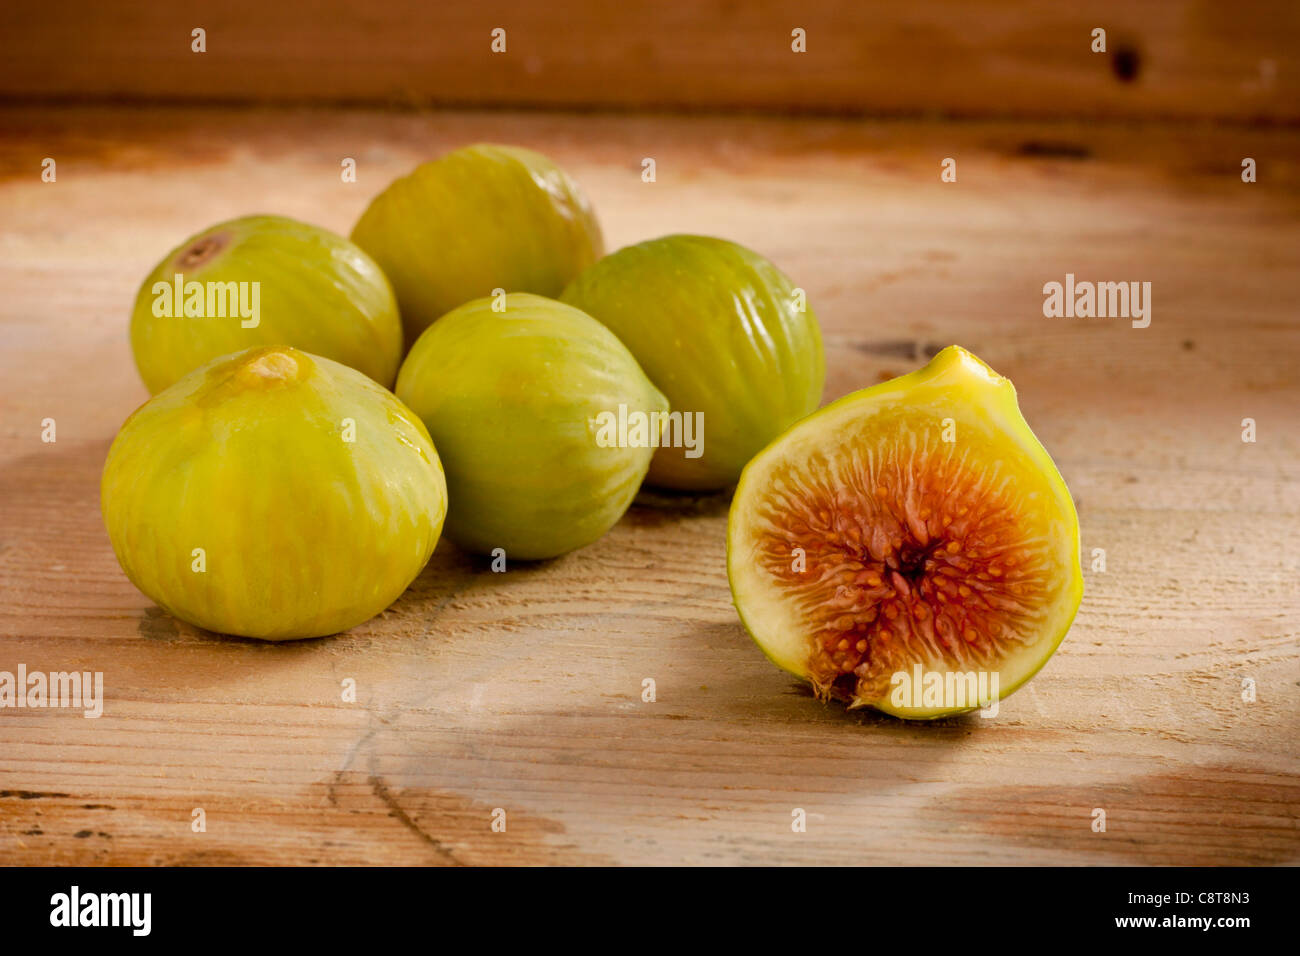 Figs on Wood - Stock Image